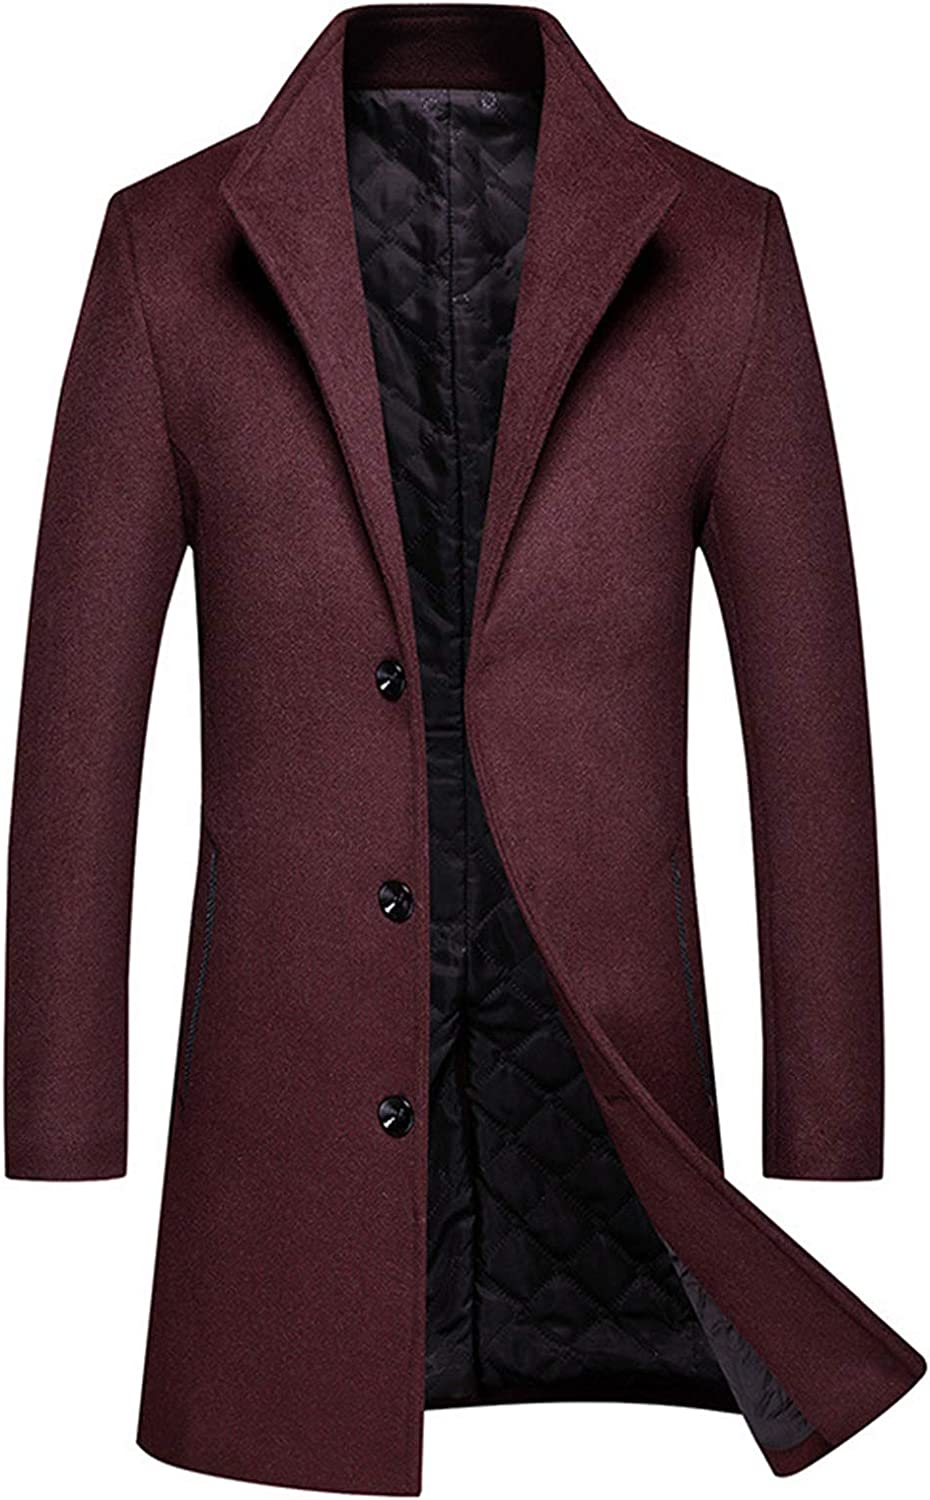 HOP FASHION Men's Wool Blend Trench Coat Long Slim Fit Thicken Jacket Overcoat Notched Lapel Single Breasted Pea Coat HOPM417-Wine-XS